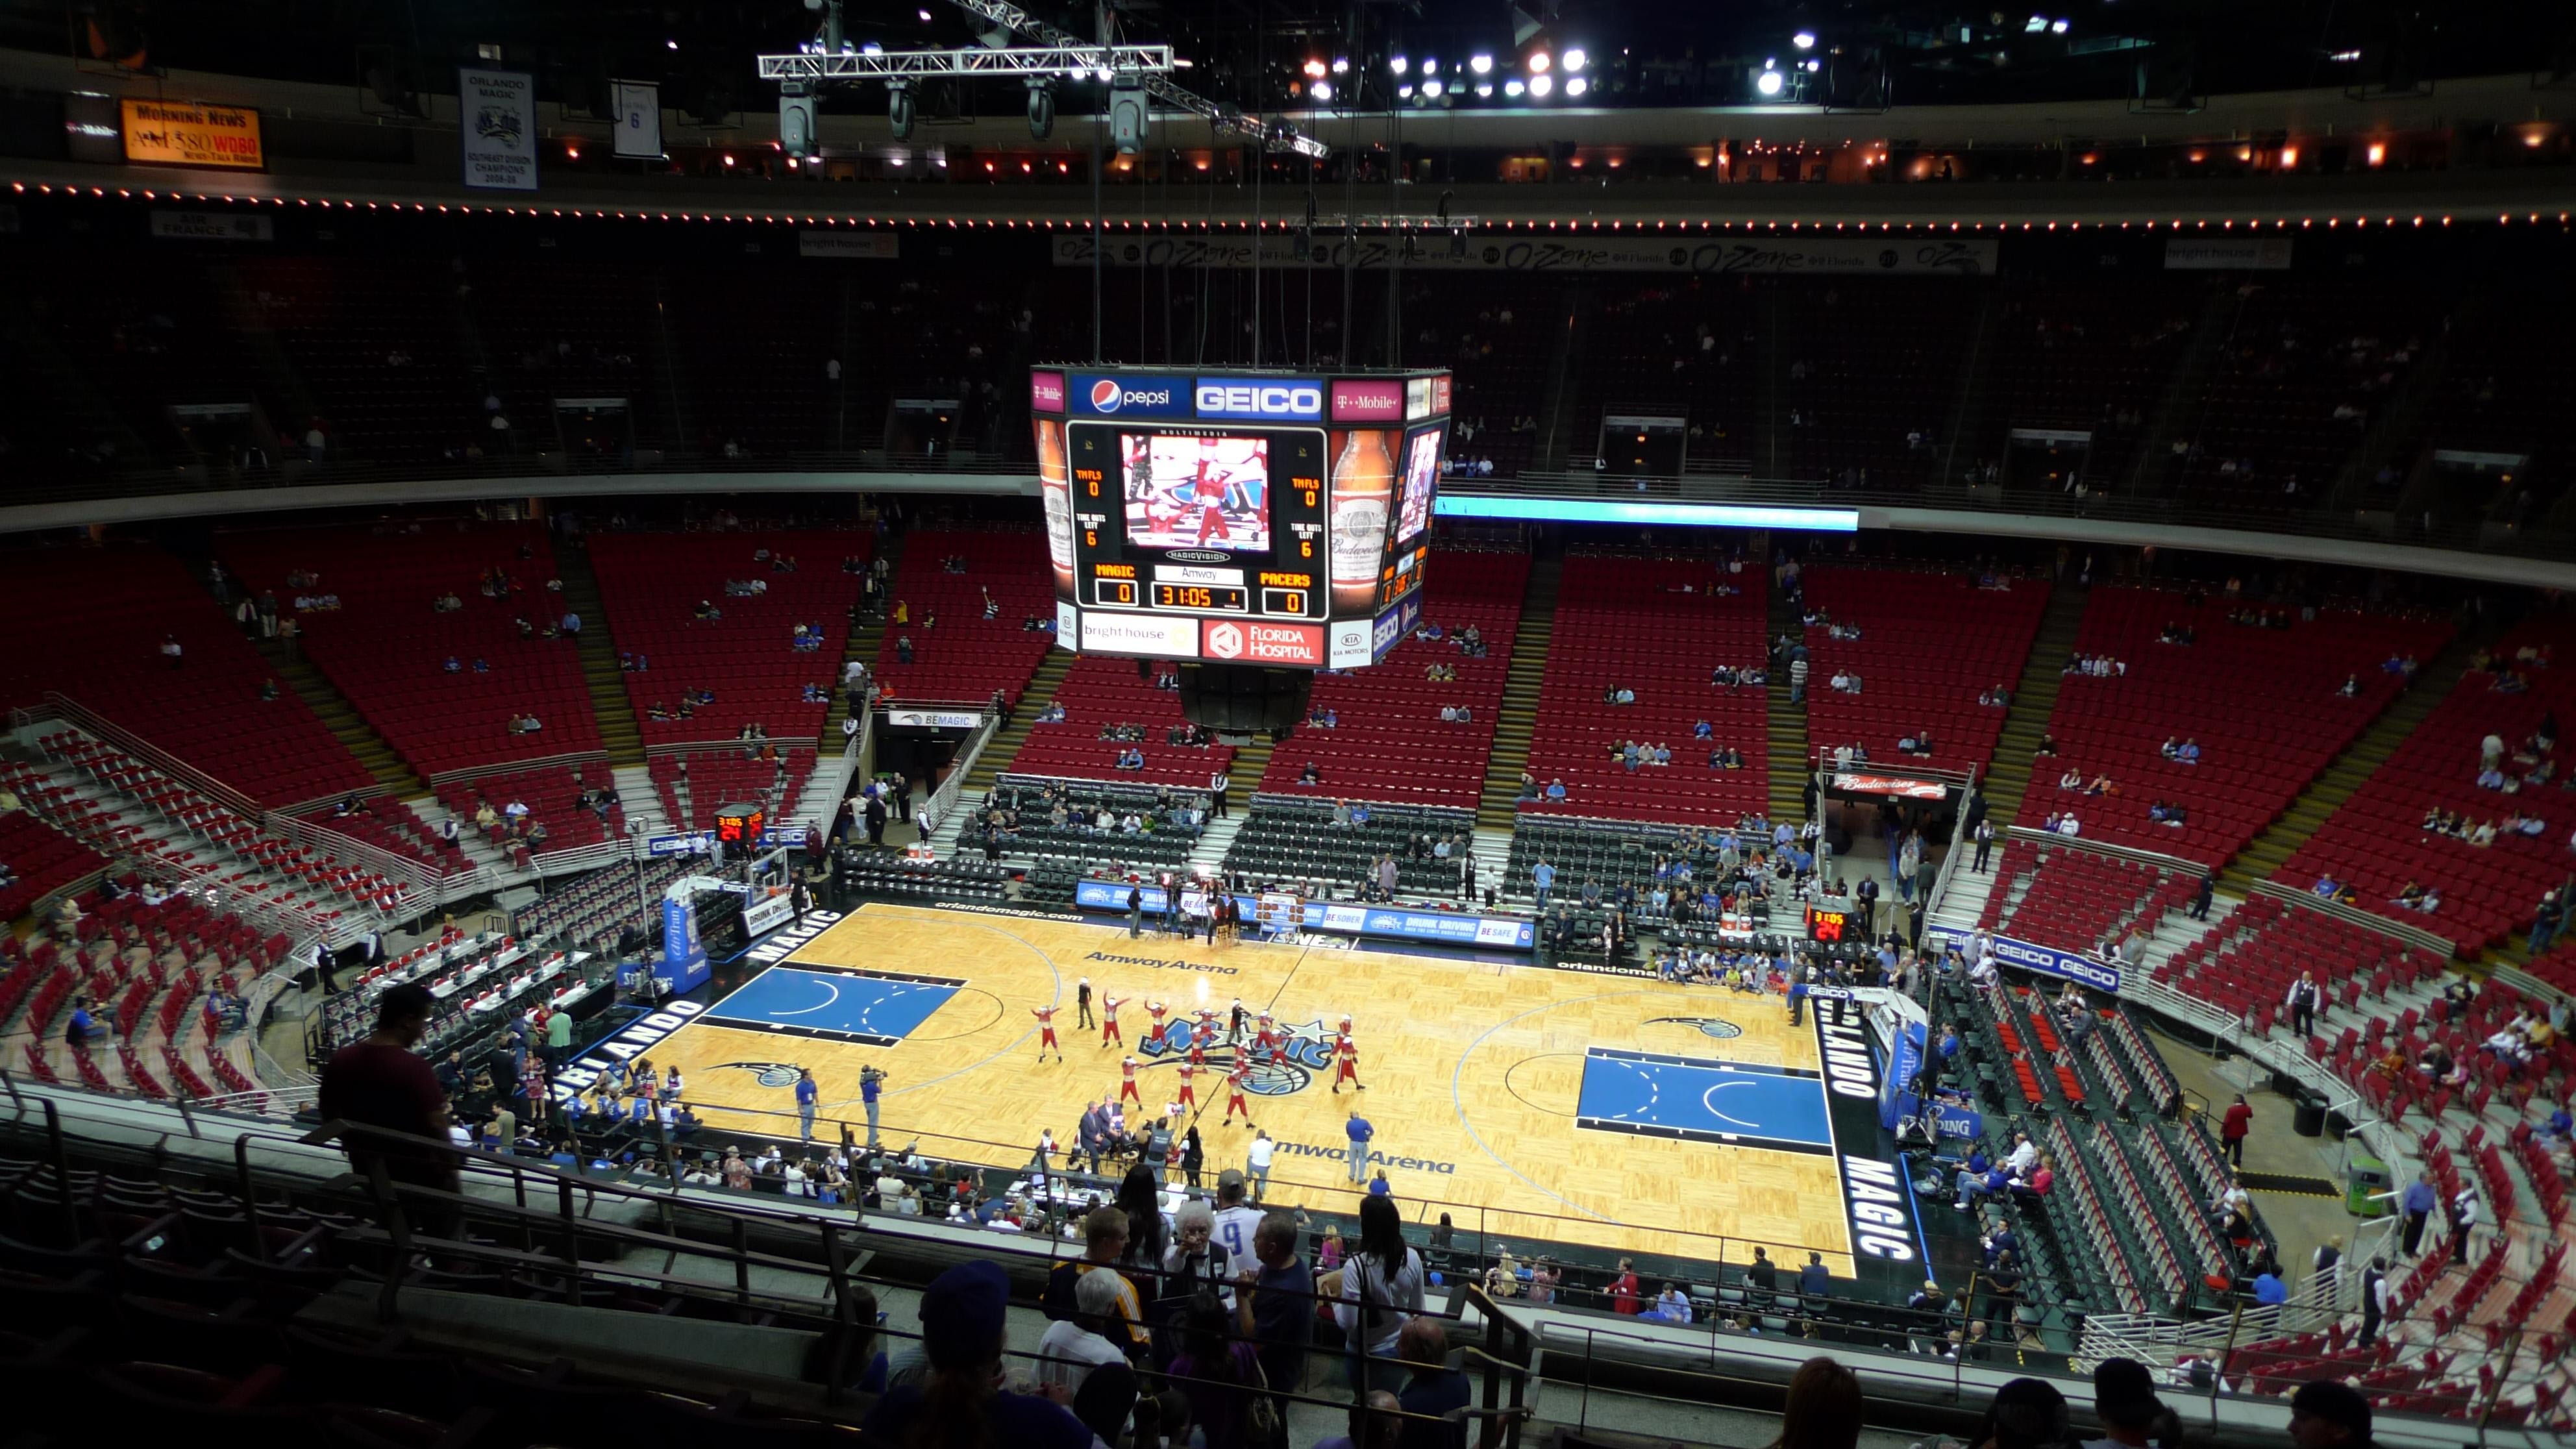 Amway Arena